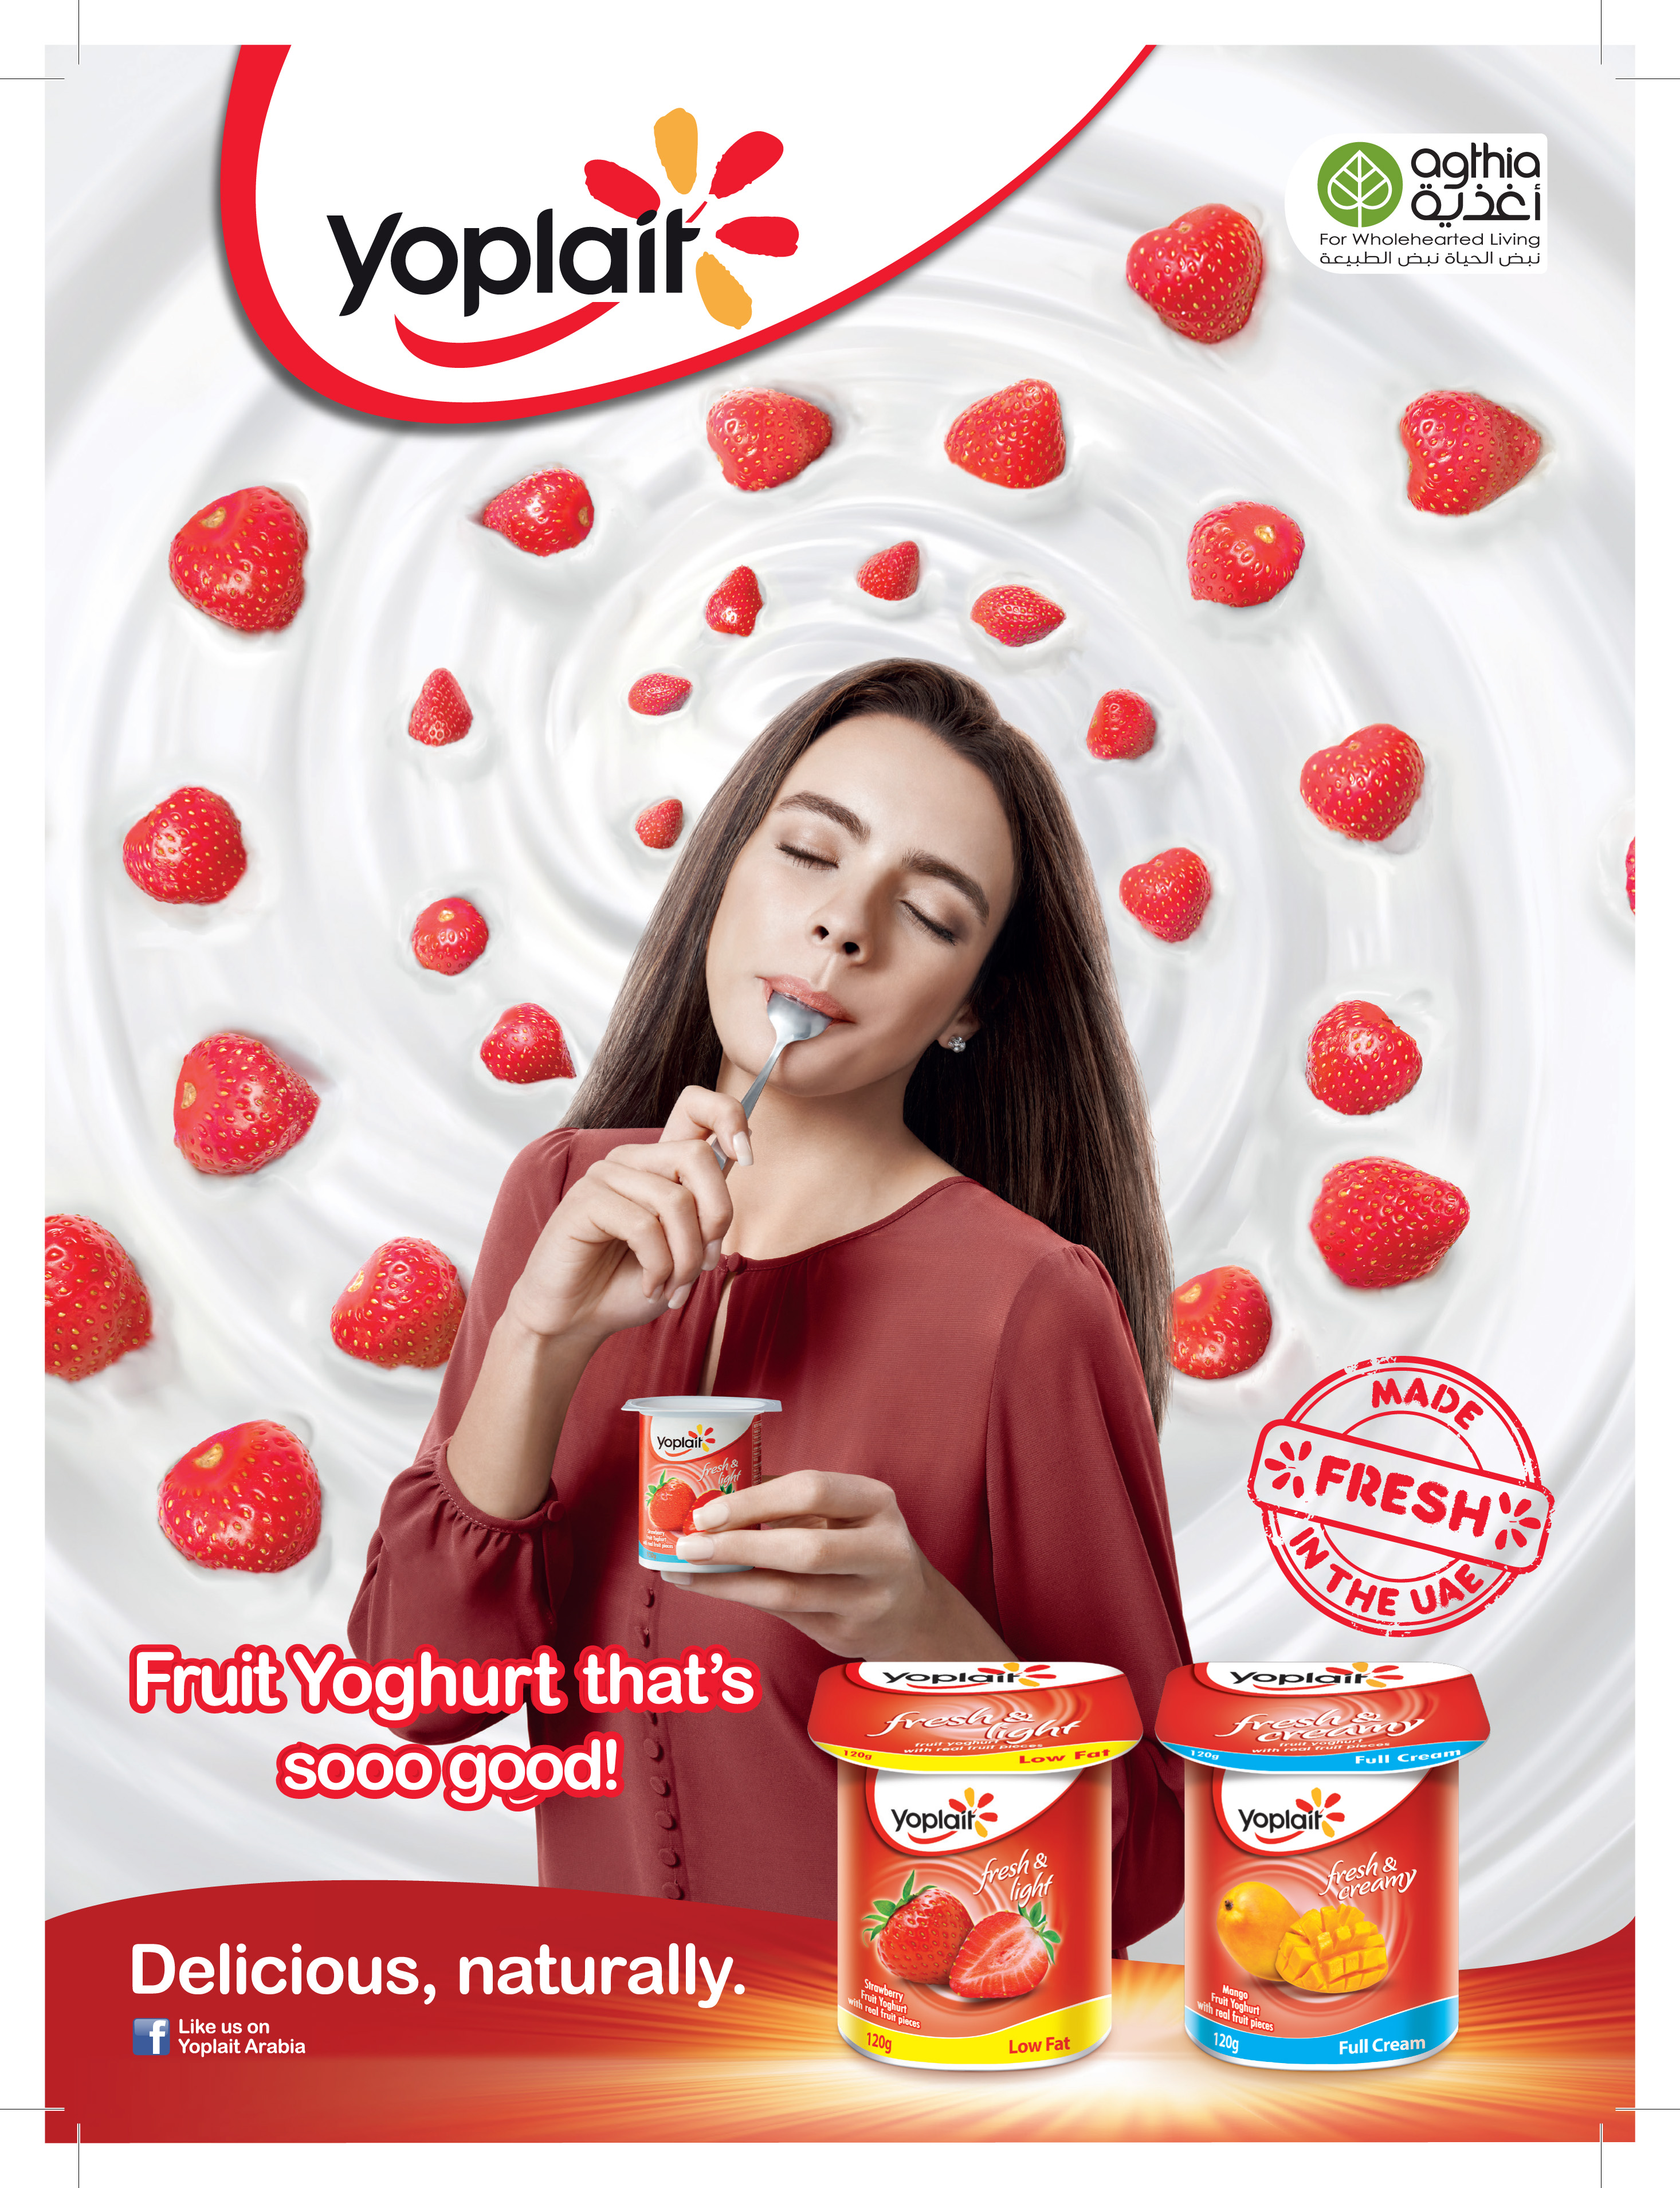 FLC Models & Talents - Print Campaigns - Yoplait yogurt 2015